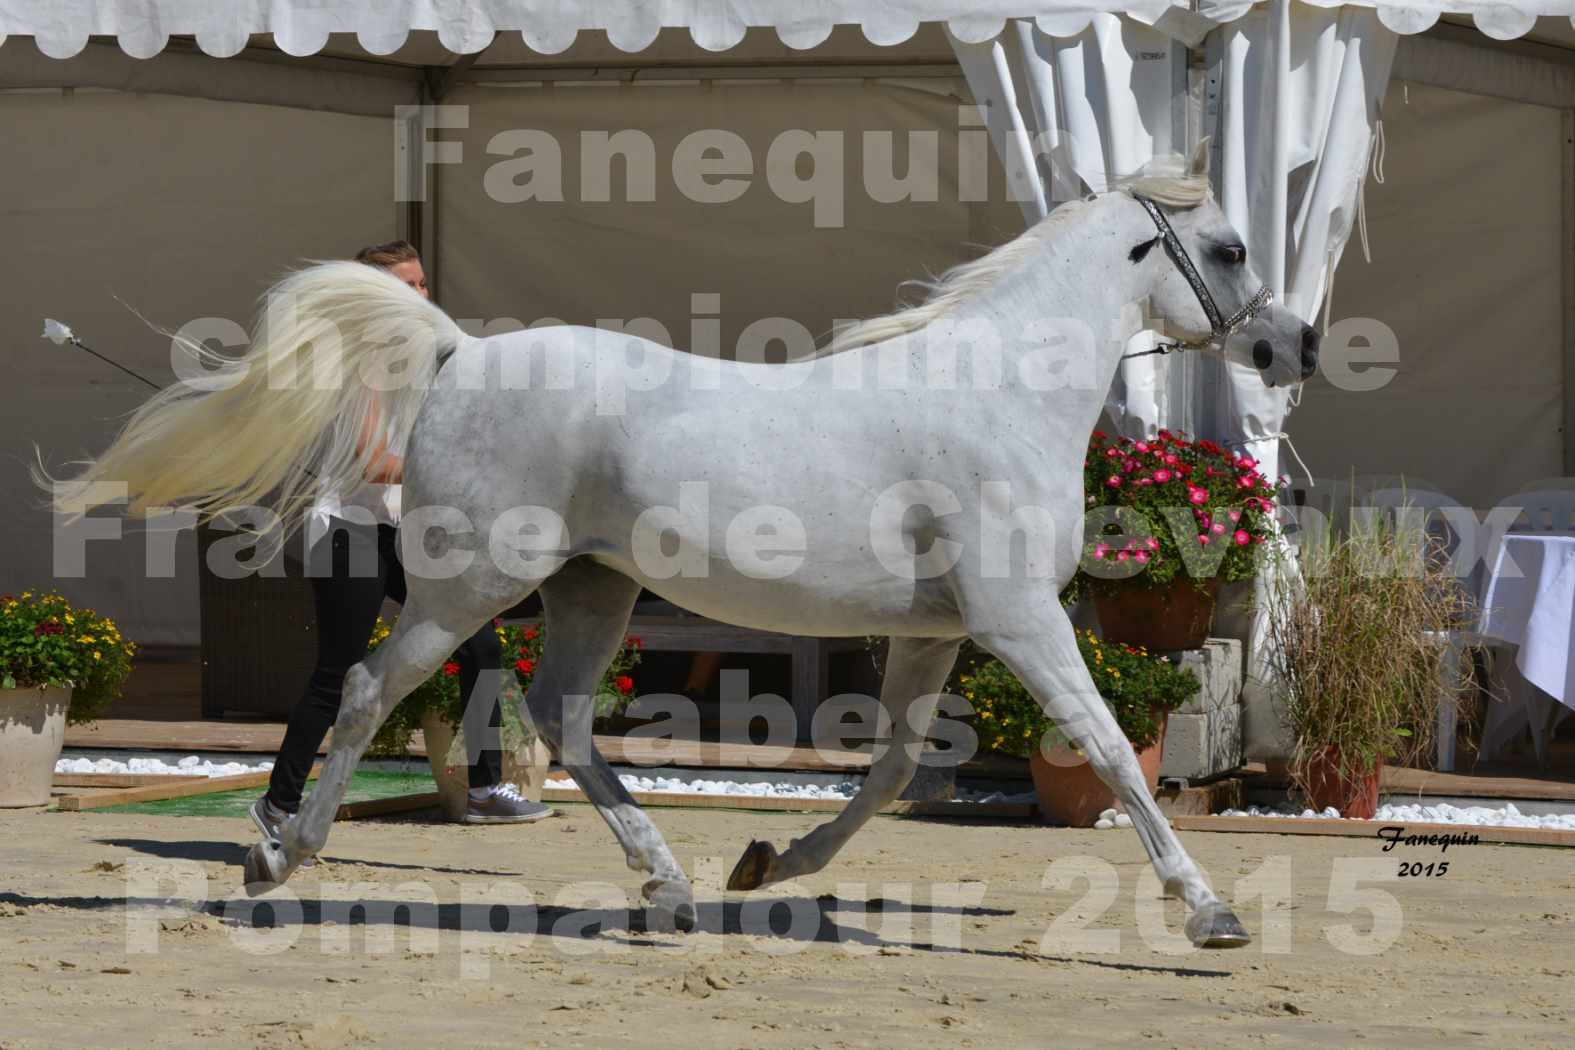 Championnat de FRANCE du cheval ARABE à POMPADOUR 2015 - Classes PROFESSIONNELS - HAADJA - 3